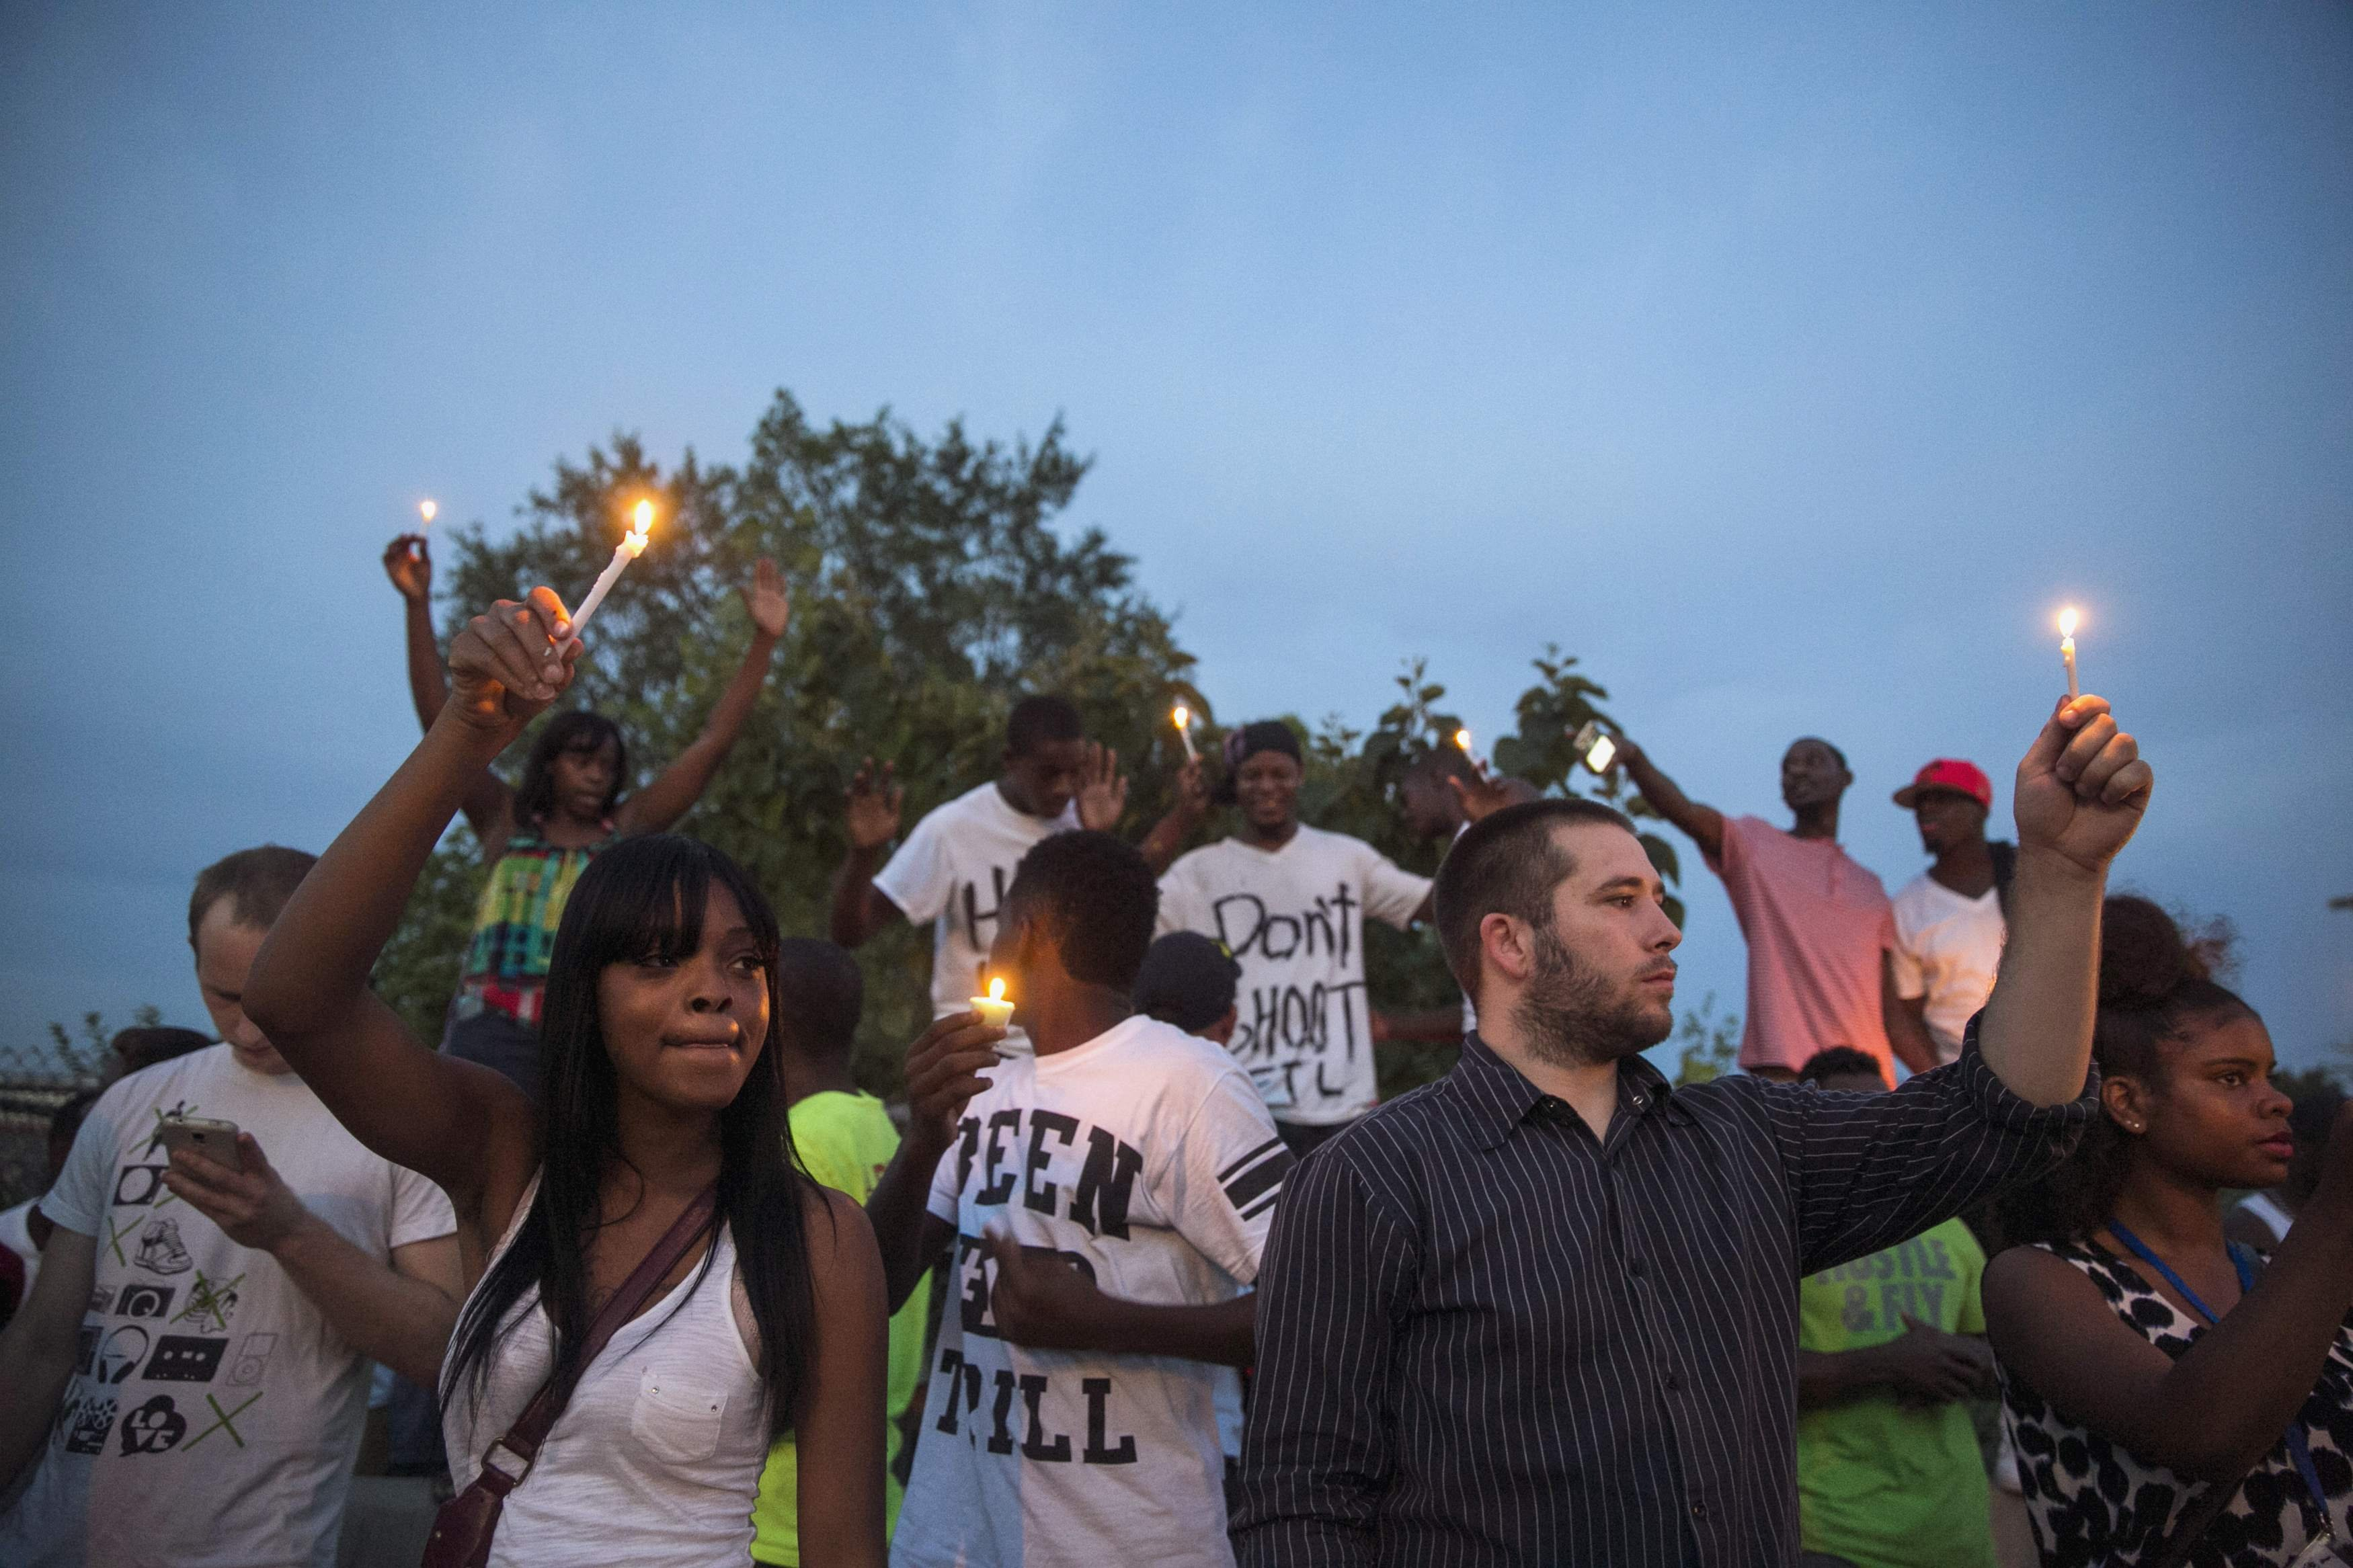 Protesters light candles as they take part in a peaceful demonstration, as communities react to the shooting of Michael Brown in Ferguson, Missouri August 14, 2014.